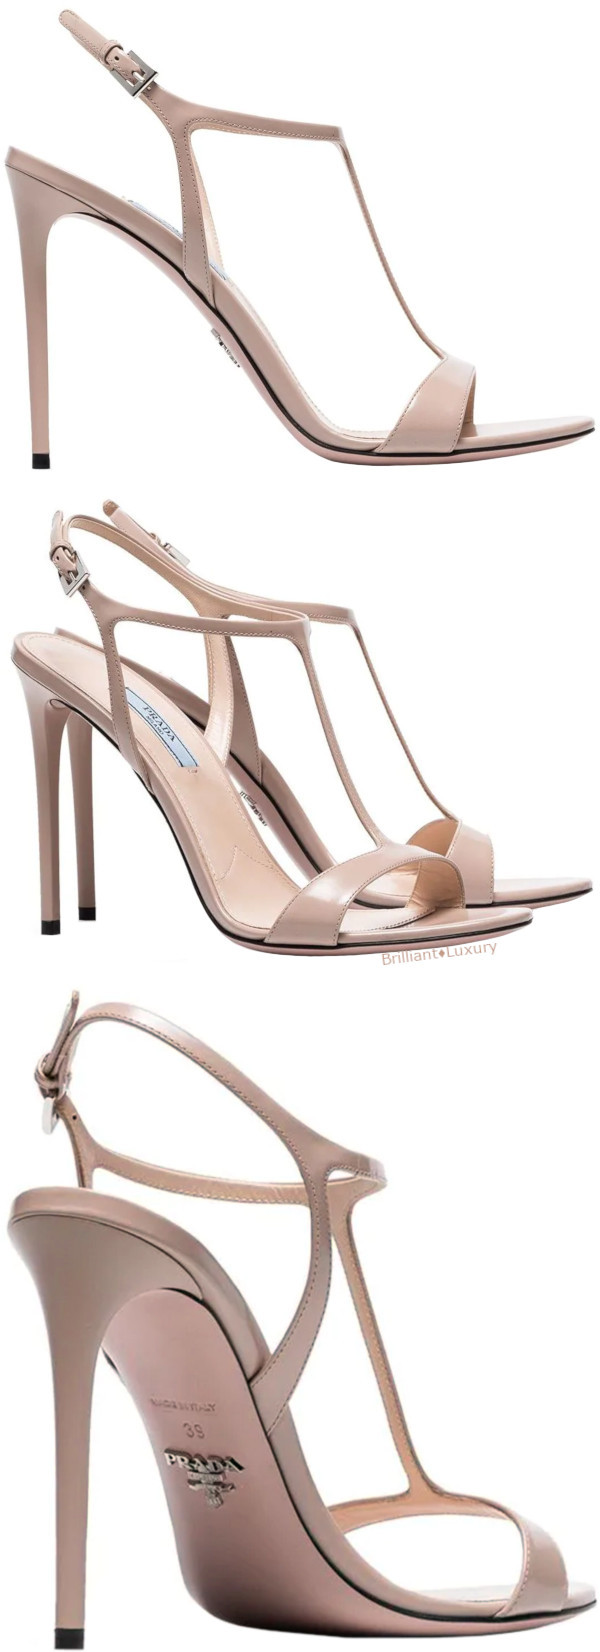 Prada T-bar elegant neutral leather sandals